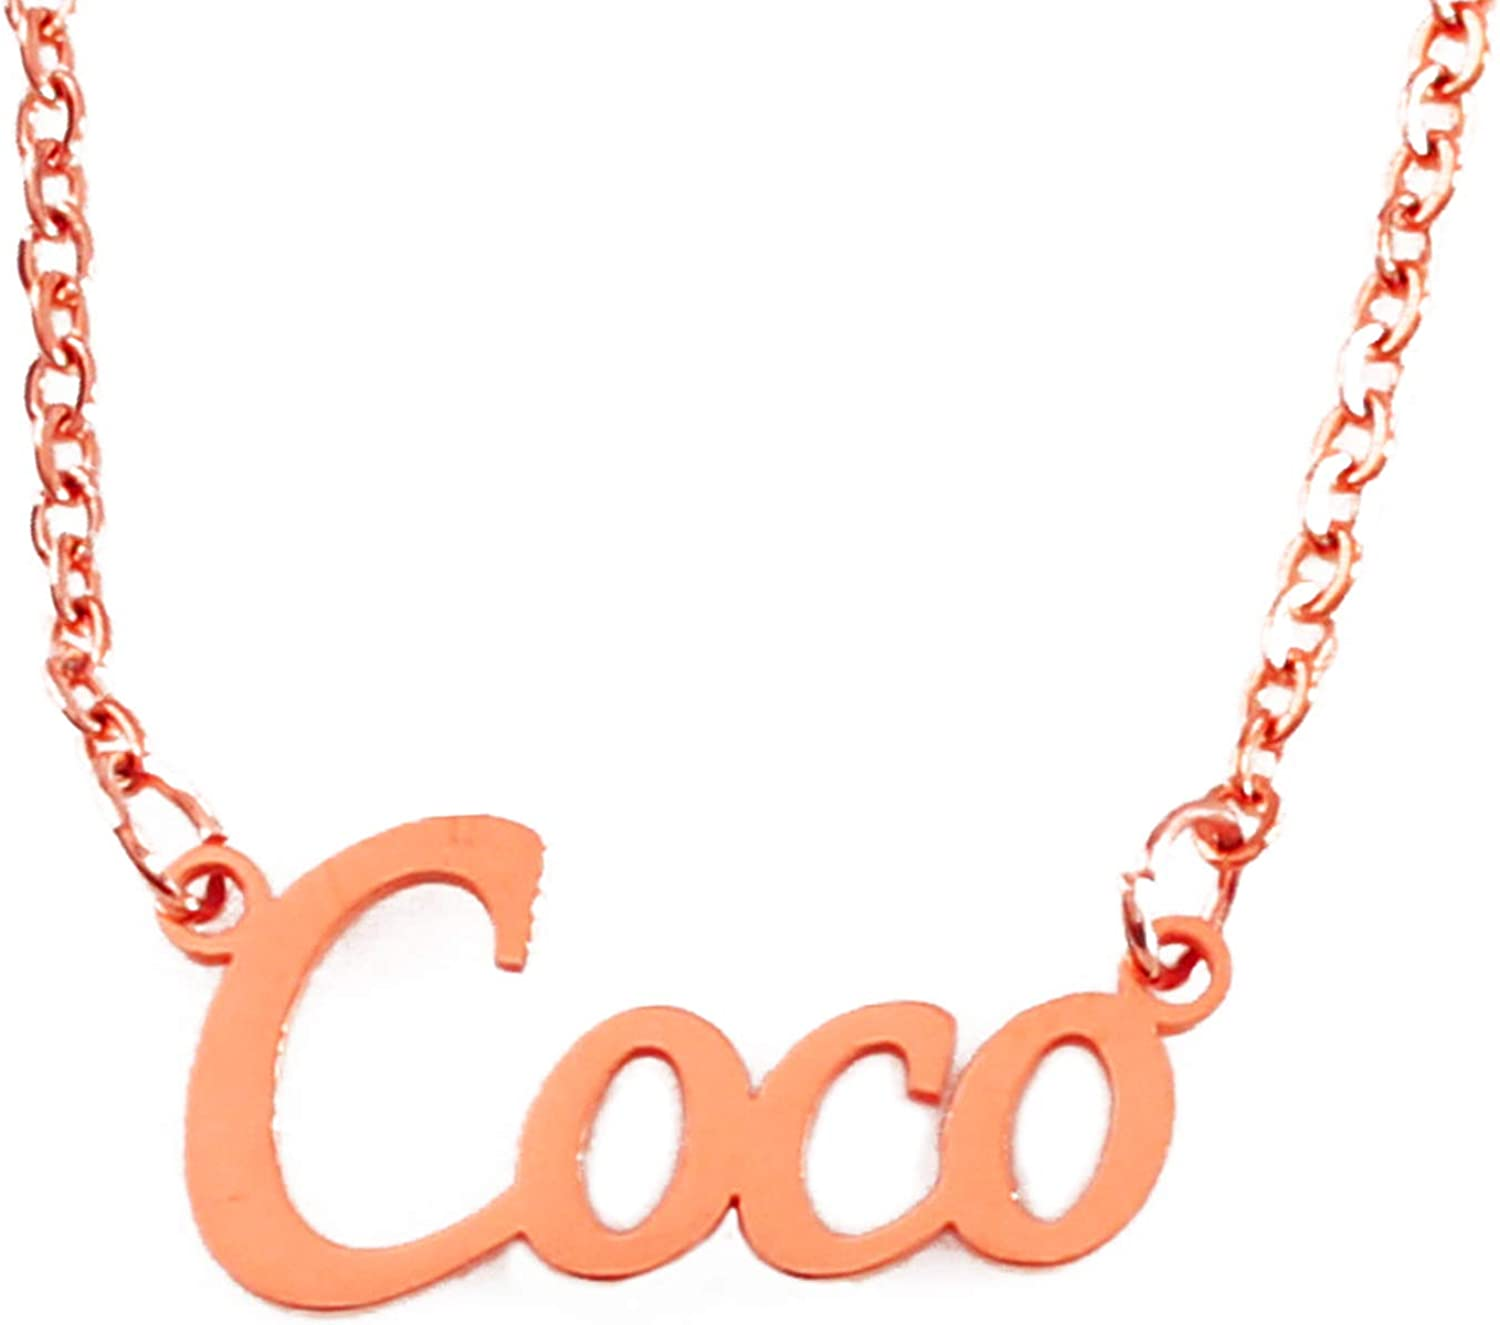 Zacria Cleo Name Necklace 18ct Rose Gold Plated